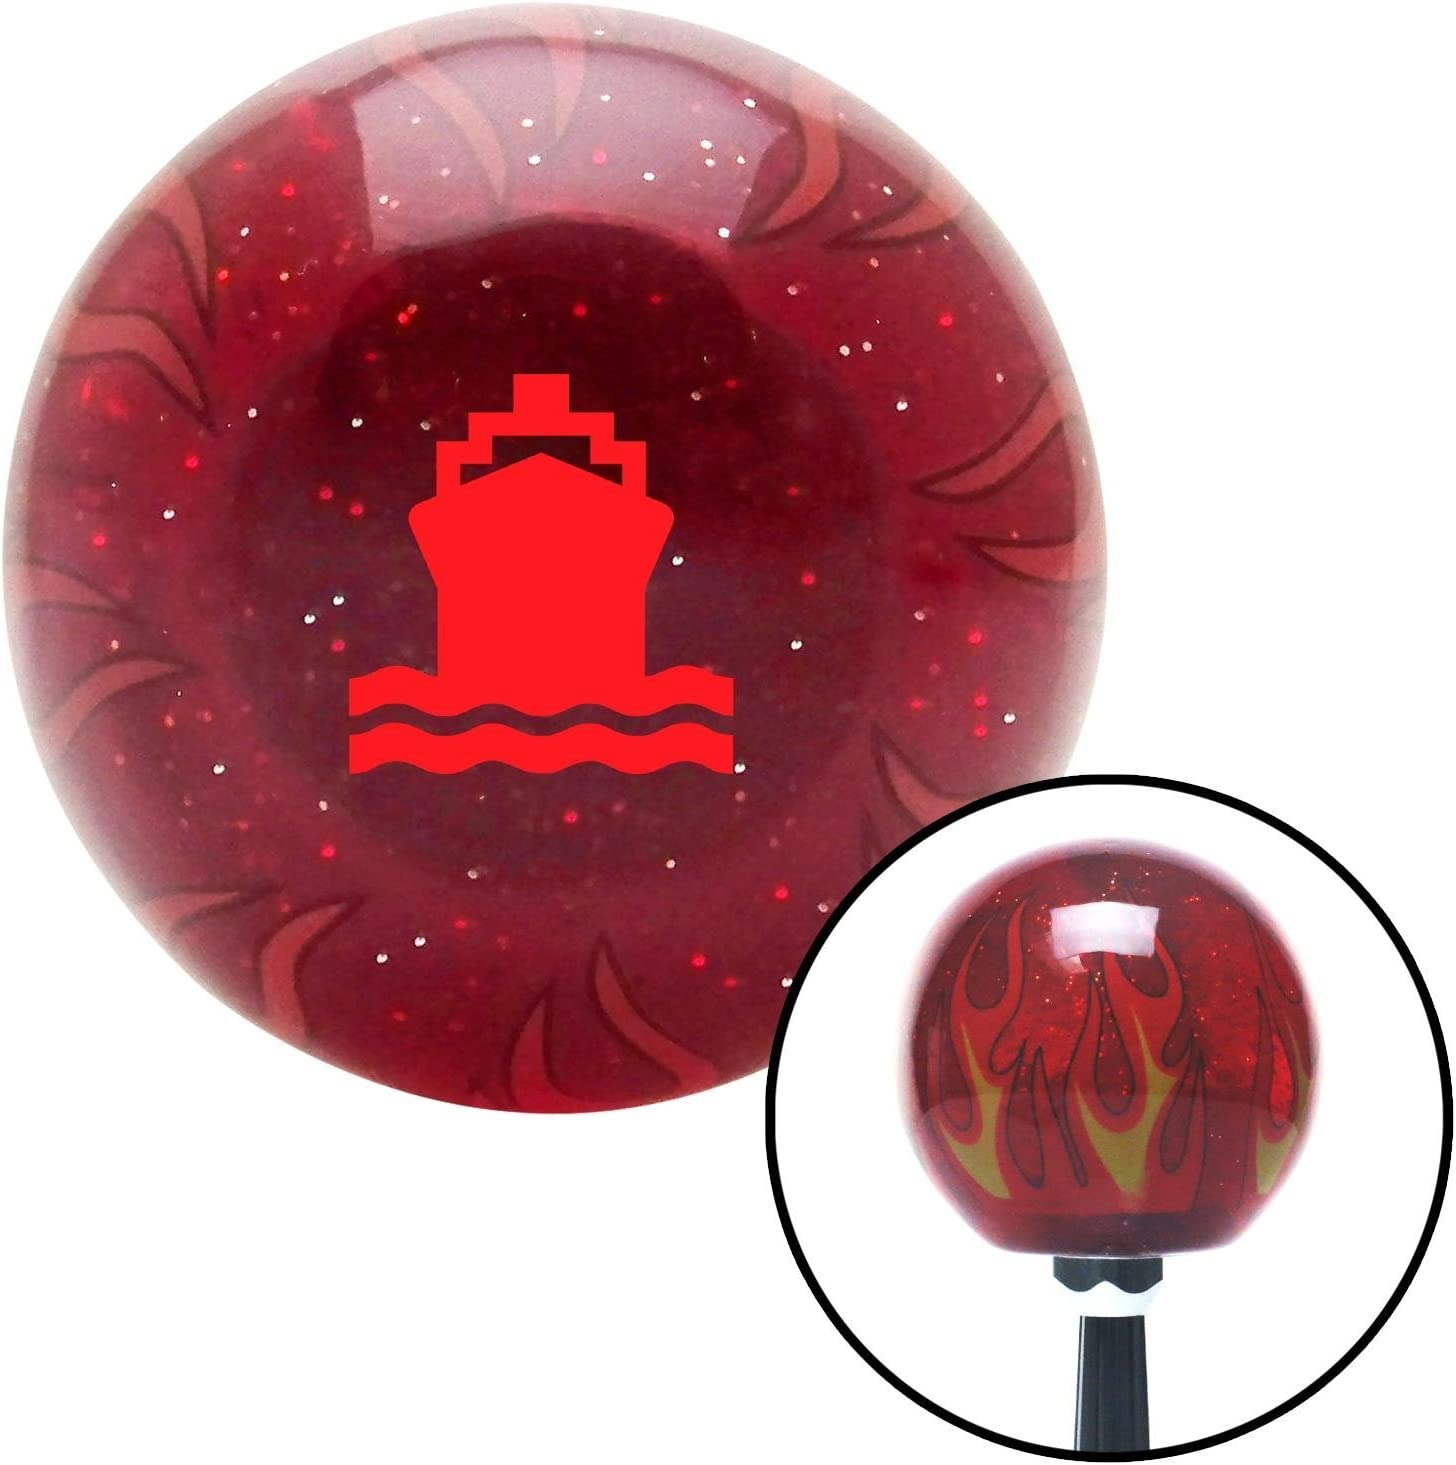 American Shifter 241029 Red Flame Metal Flake Shift Knob with M16 x 1.5 Insert Red Marine Ship